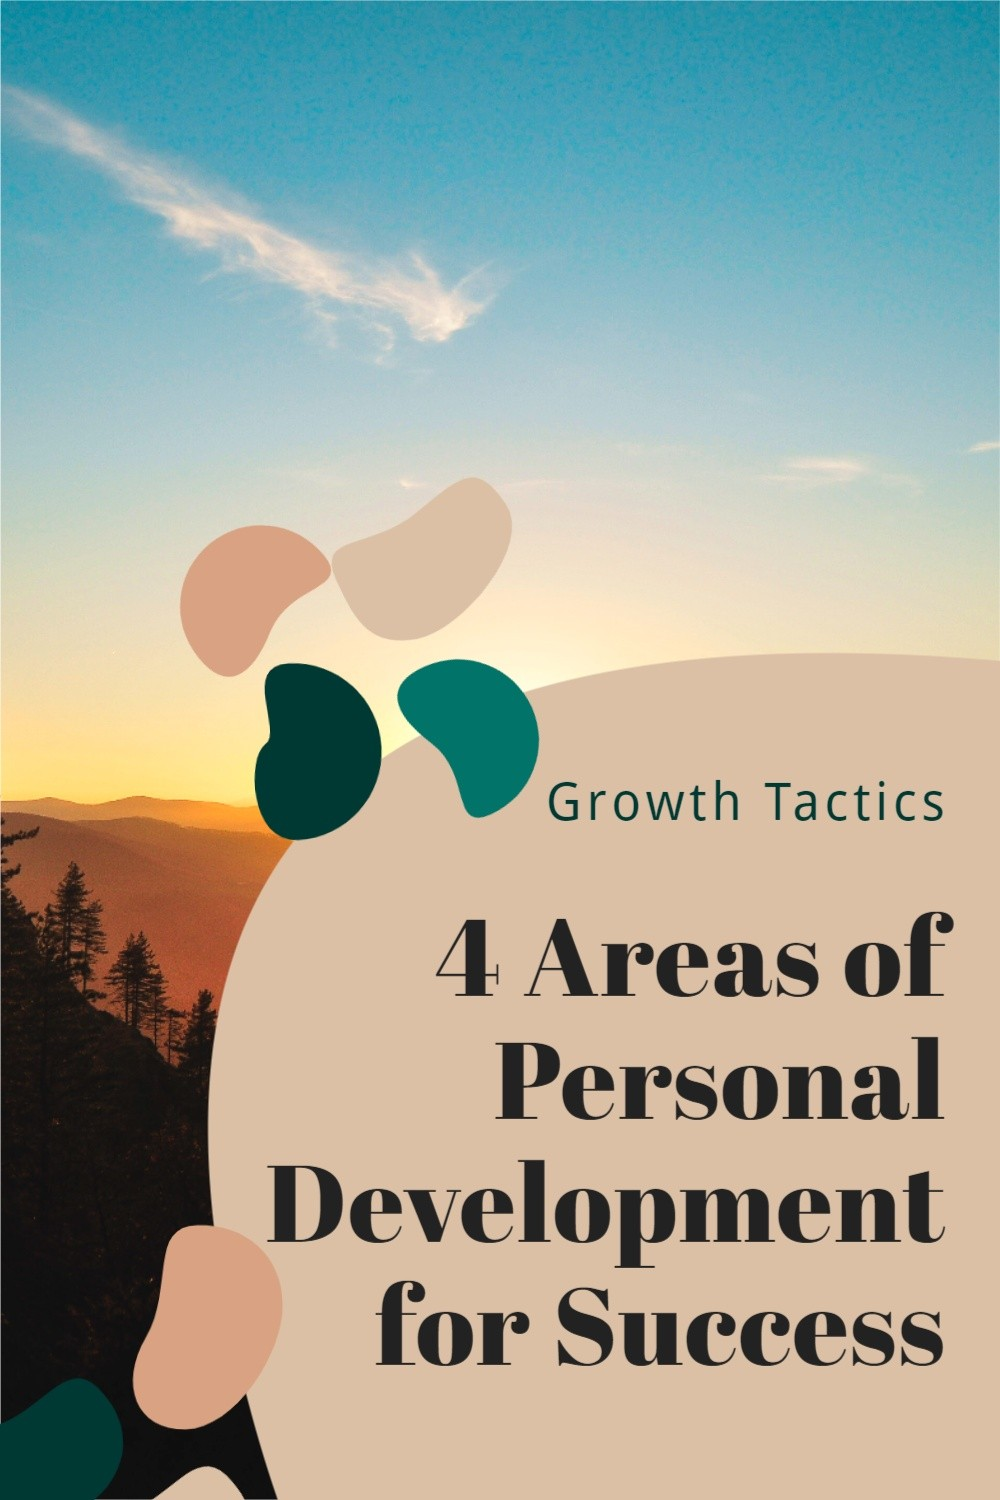 4 Areas of Personal Development for Success